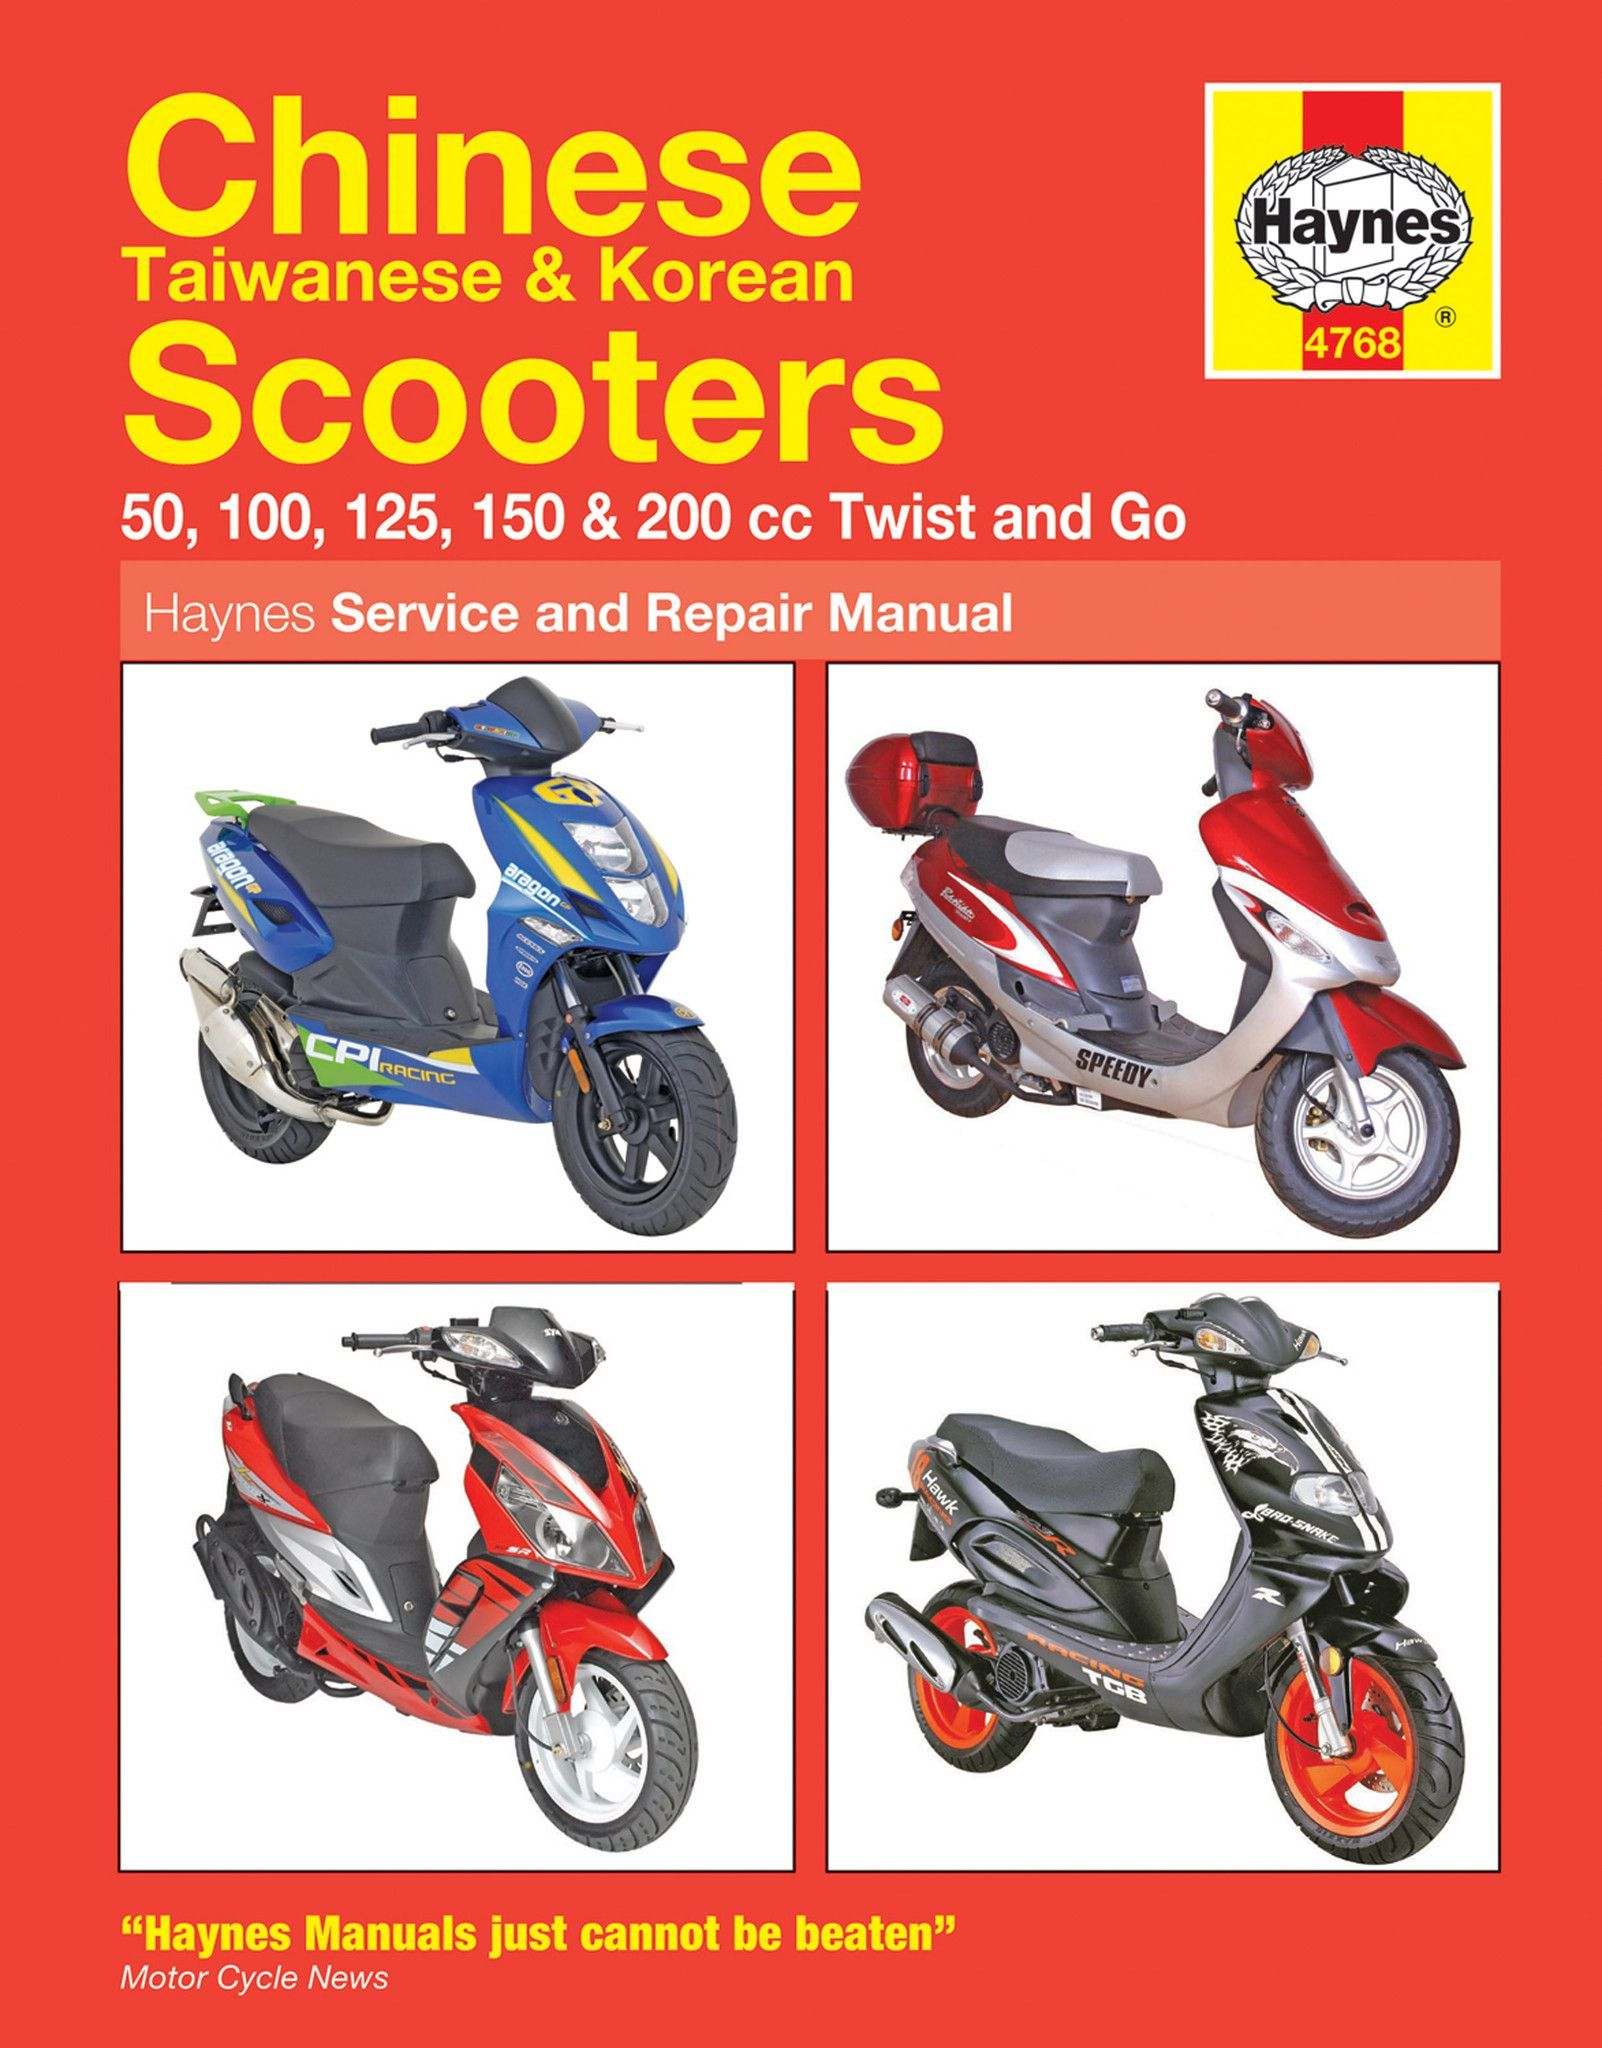 haynes m4768 repair manual for 2004 14 chinese taiwanese and korean rh pinterest com 50Cc Scooter Parts and Accessories 50Cc Chinese Scooter Parts